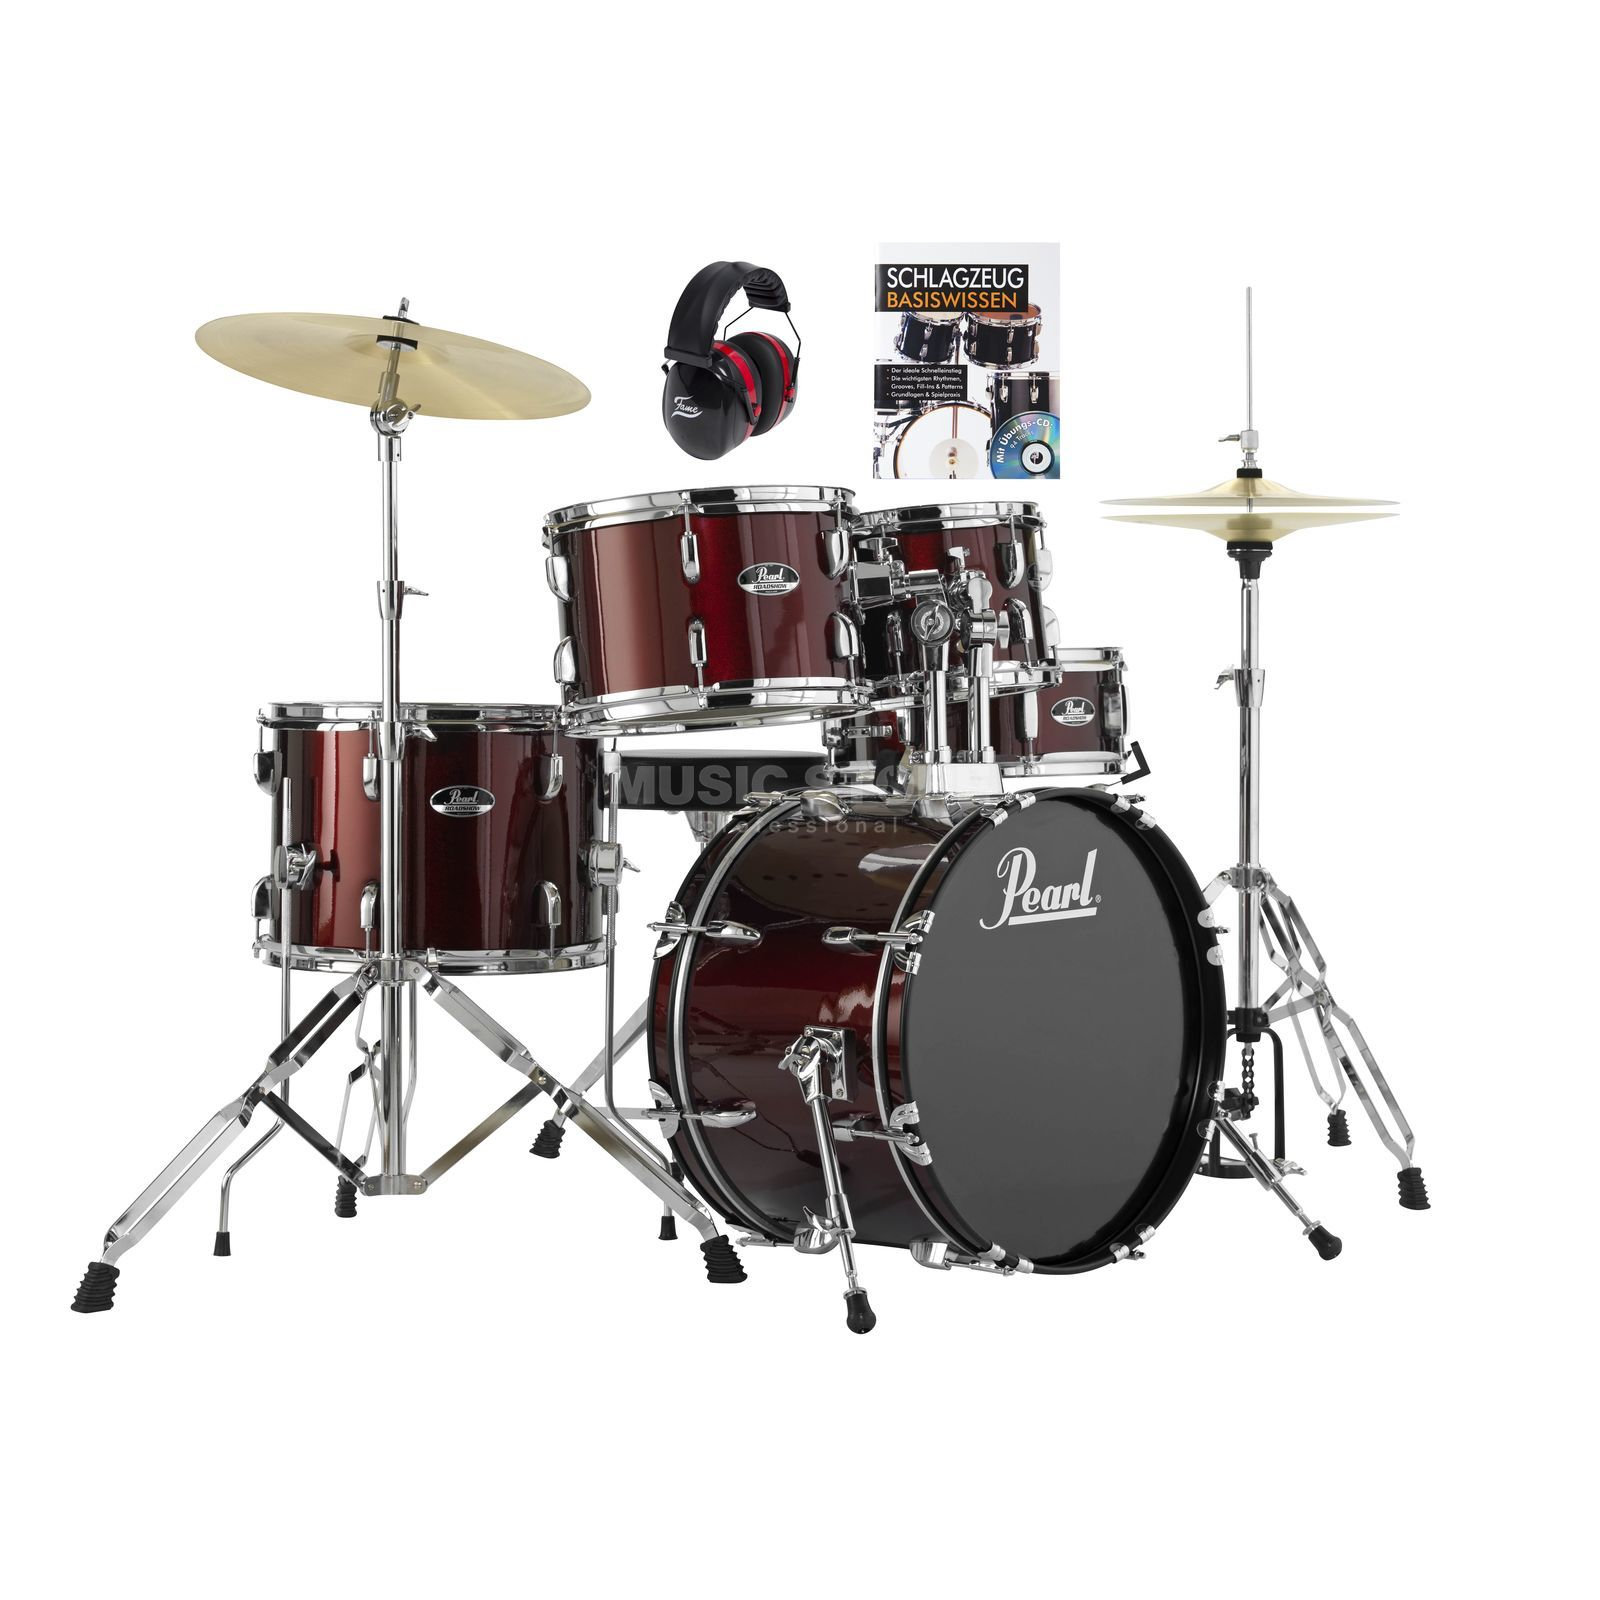 PEARL Roadshow Junior RS585C - Set Produktbillede